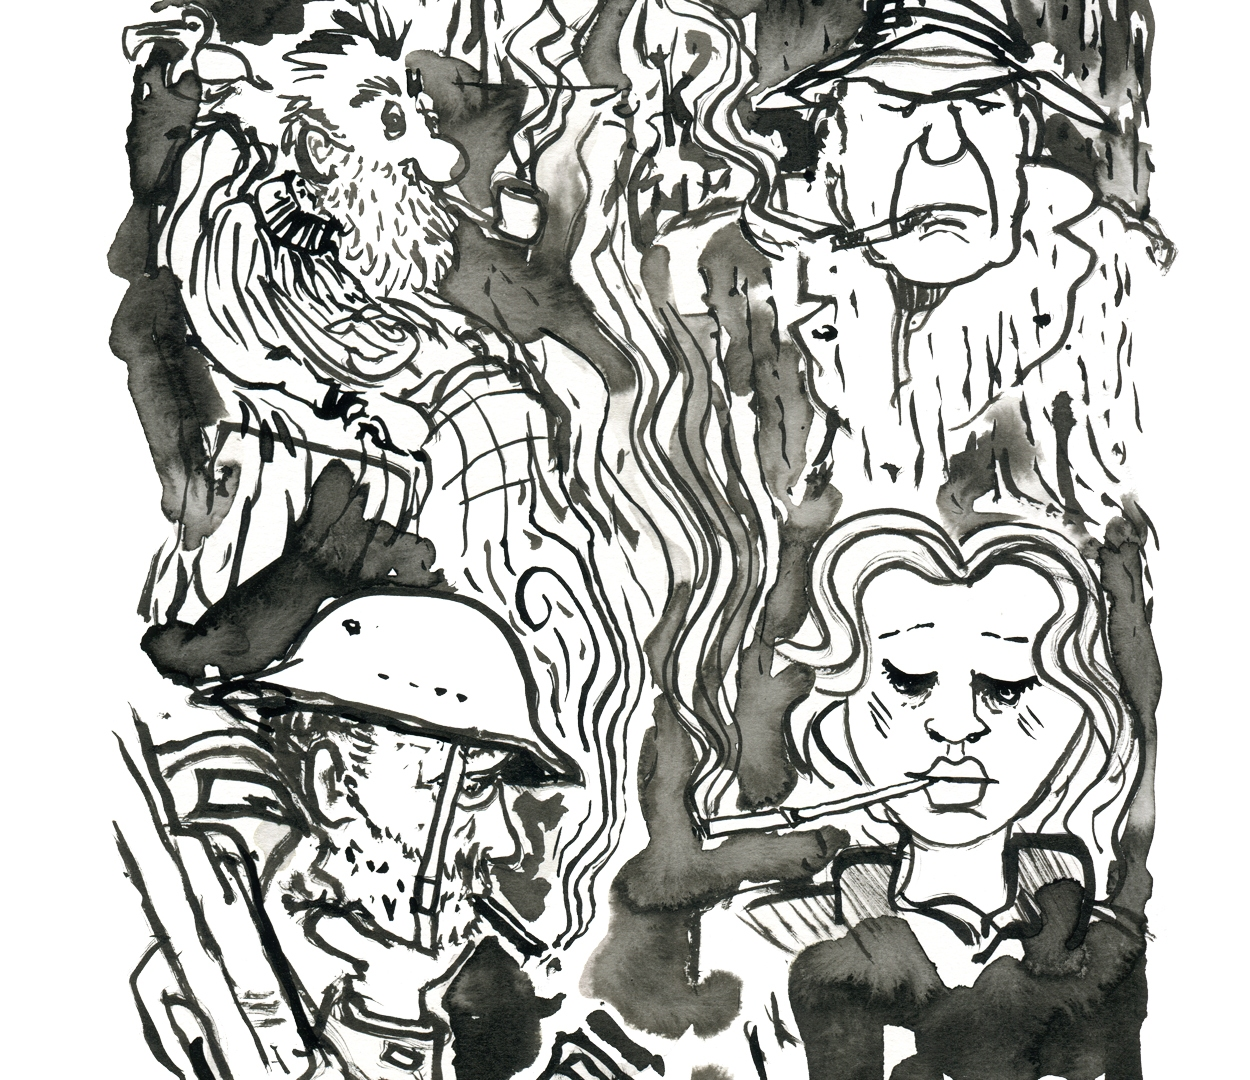 Four smokers illustration by Frits Ahlefeldt